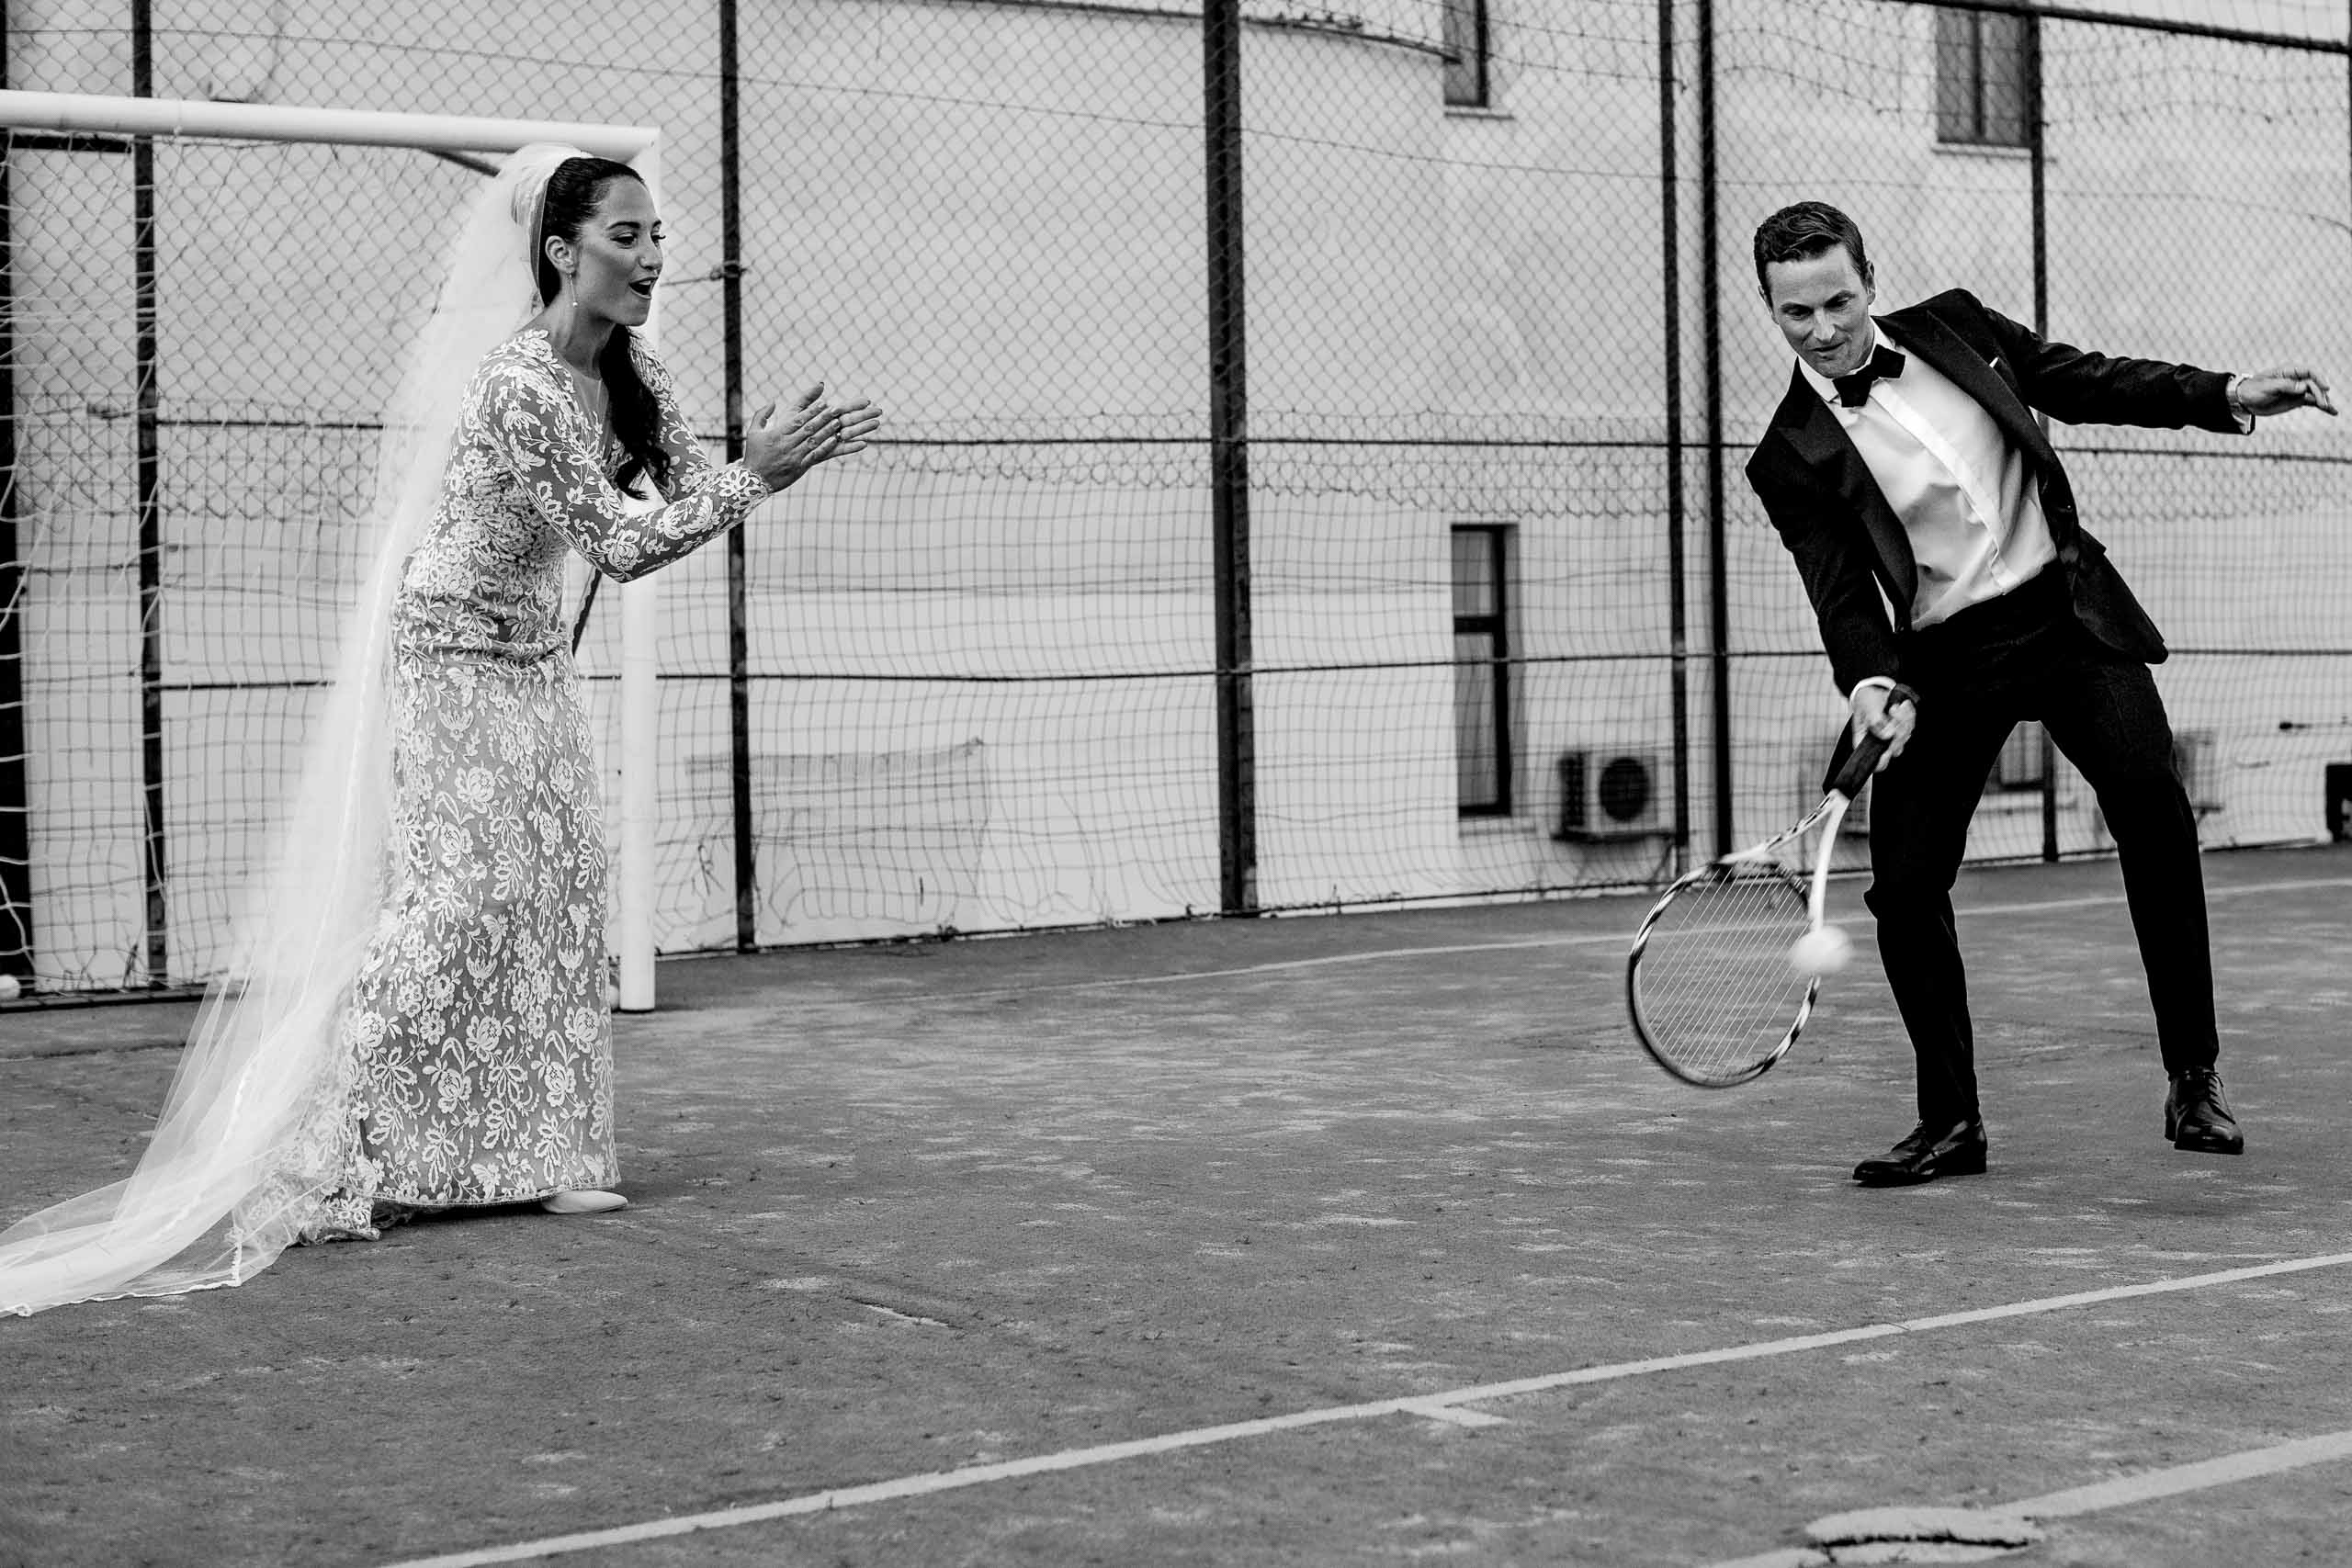 Fun bride and groom photo playing tennis at Villa Cimbrone for their Ravello wedding elopement along the Amafi coast in Italy.